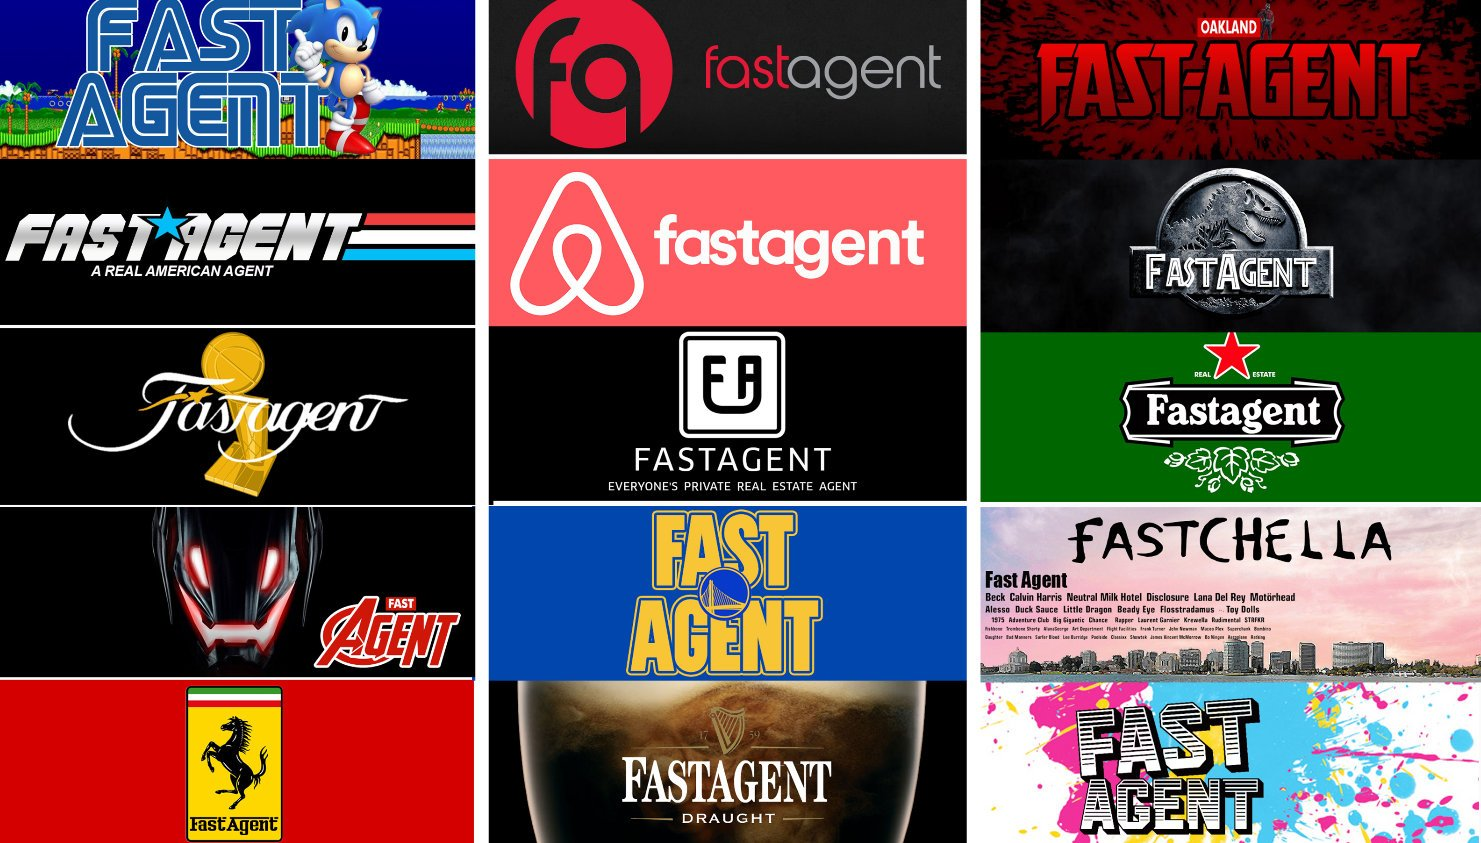 #FastAgent Newsletter Banners